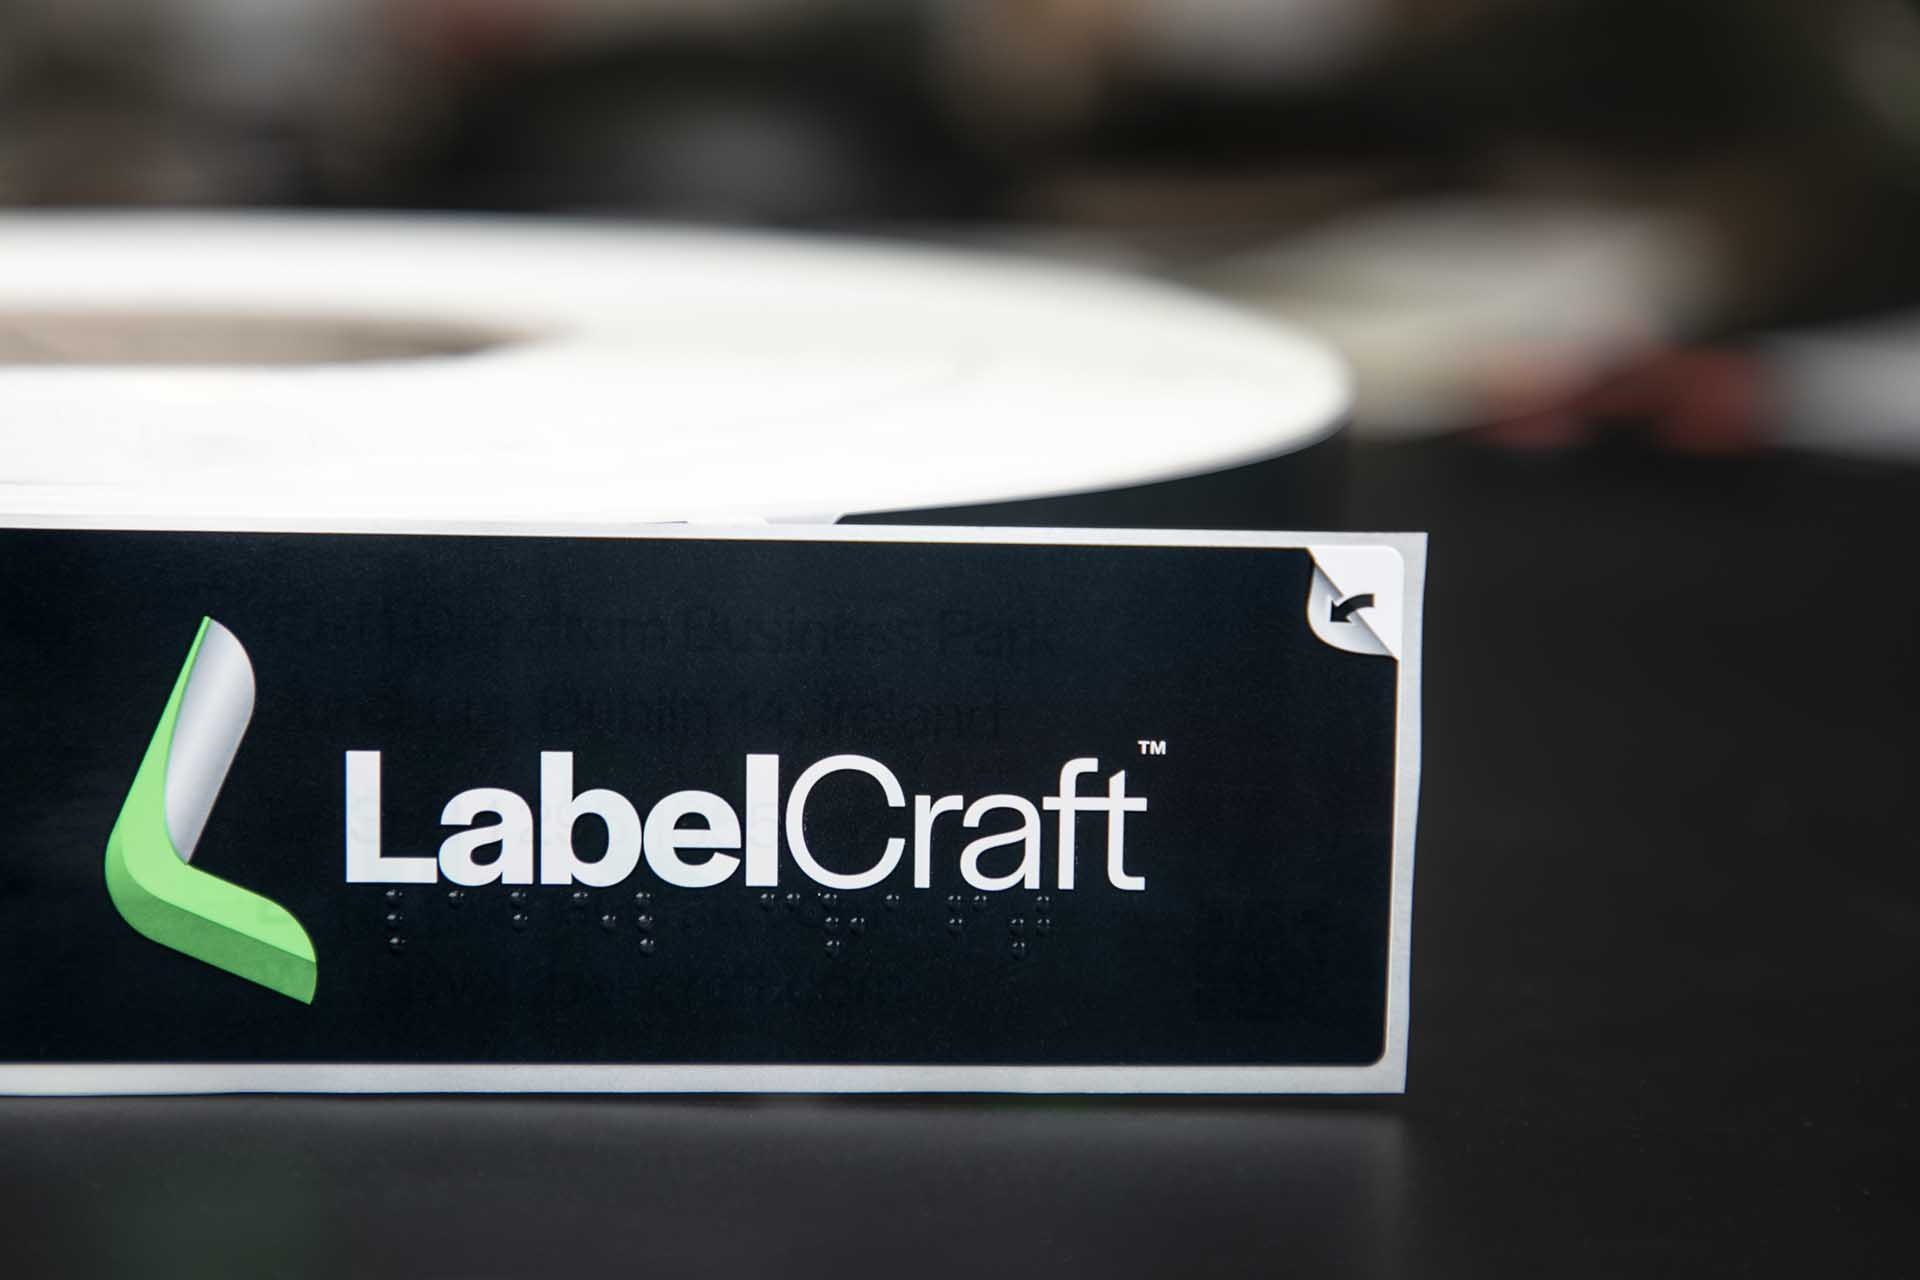 The Benefits of Utilising Self-Adhesive Labels on Rolls